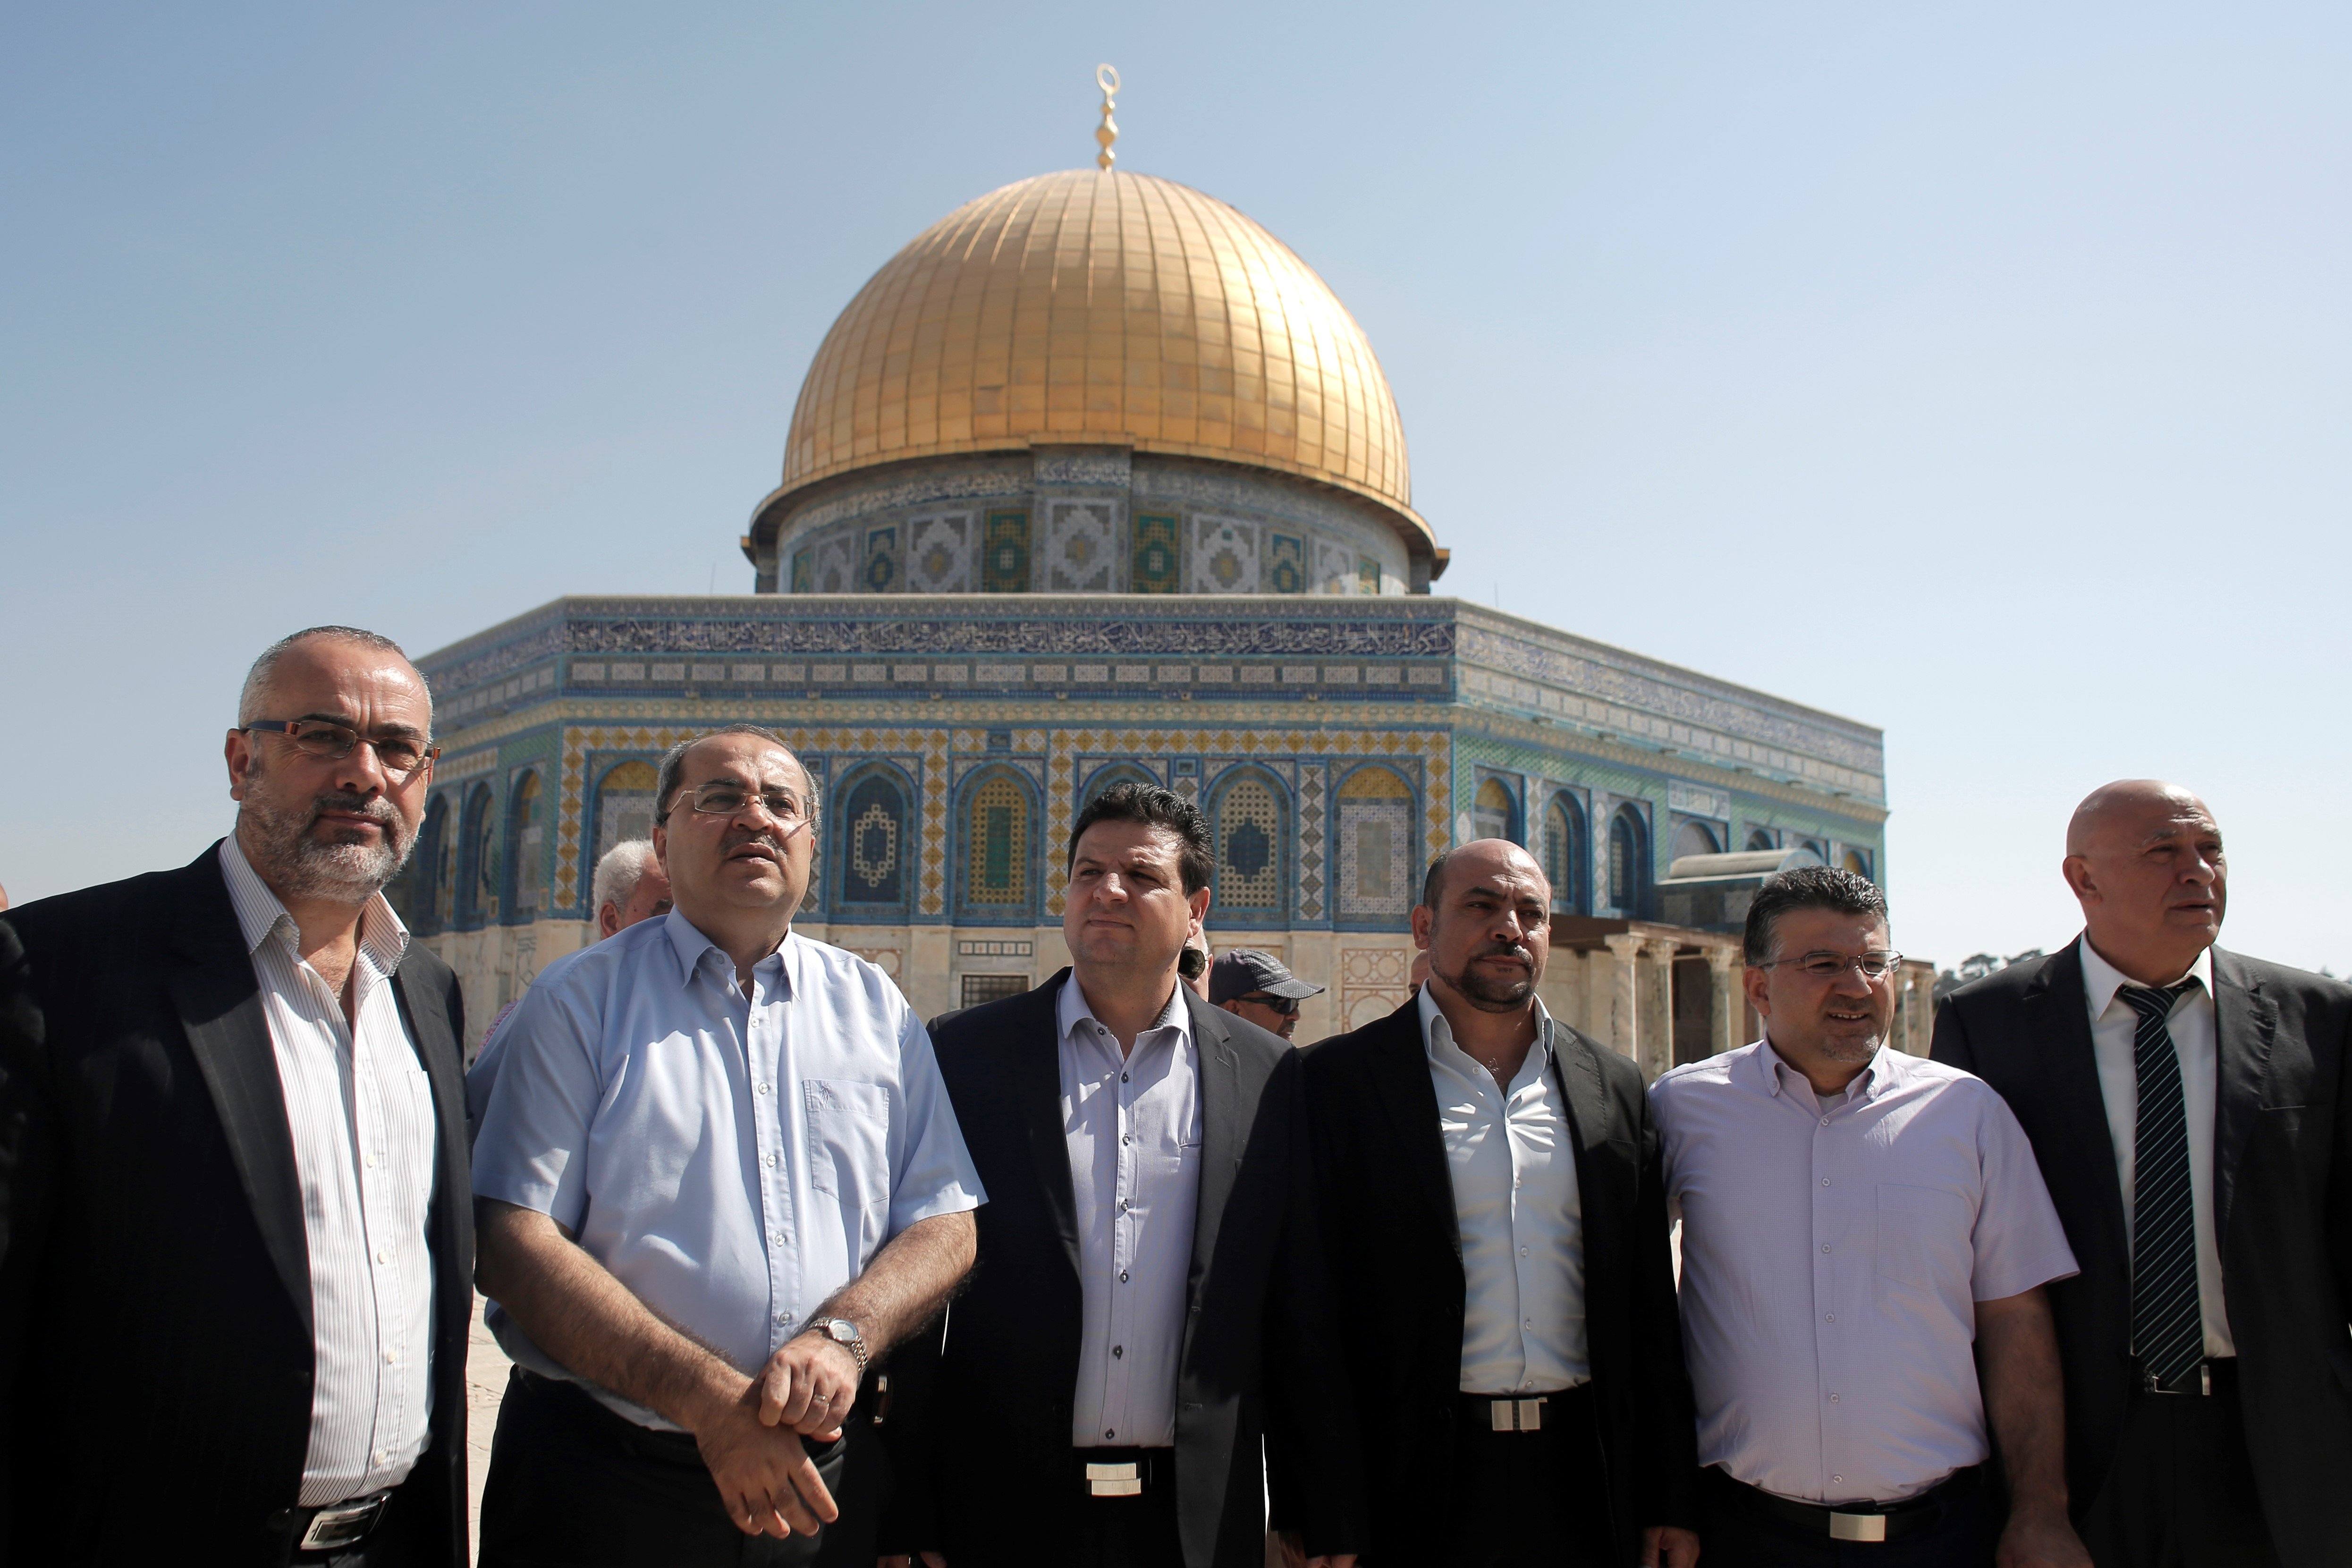 Members of the Joint List of Arab parties pose for a photo in front of the Dome of the Rock at the Al-Aqsa Mosque compound on 28 July, 2015 (AFP)